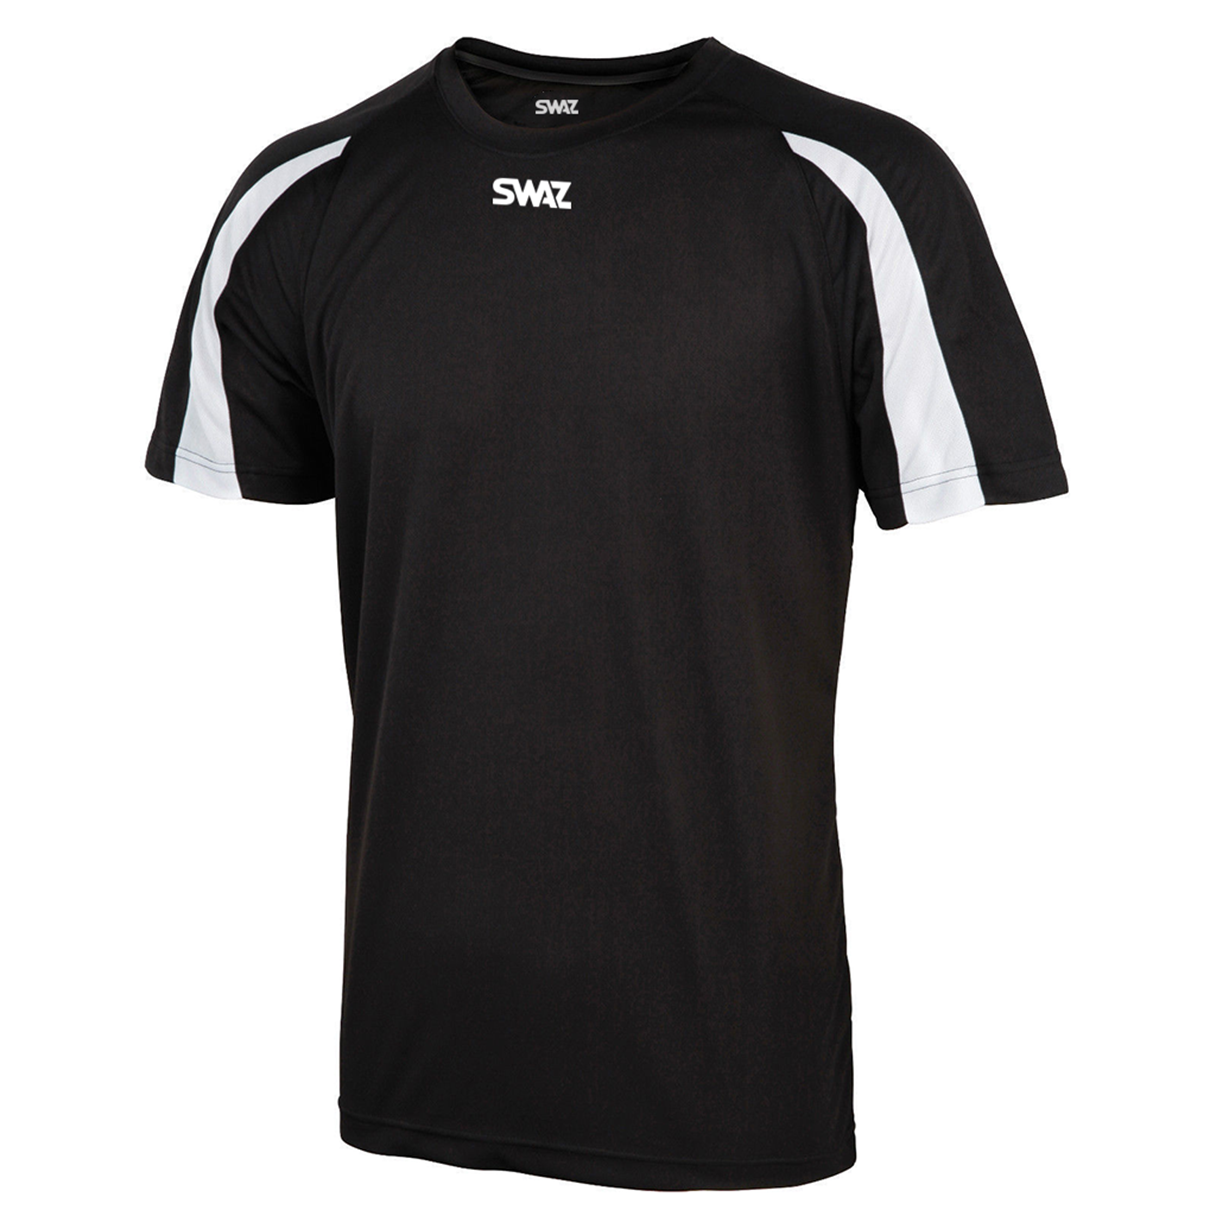 SWAZ Premier Training T-Shirt – Black/White